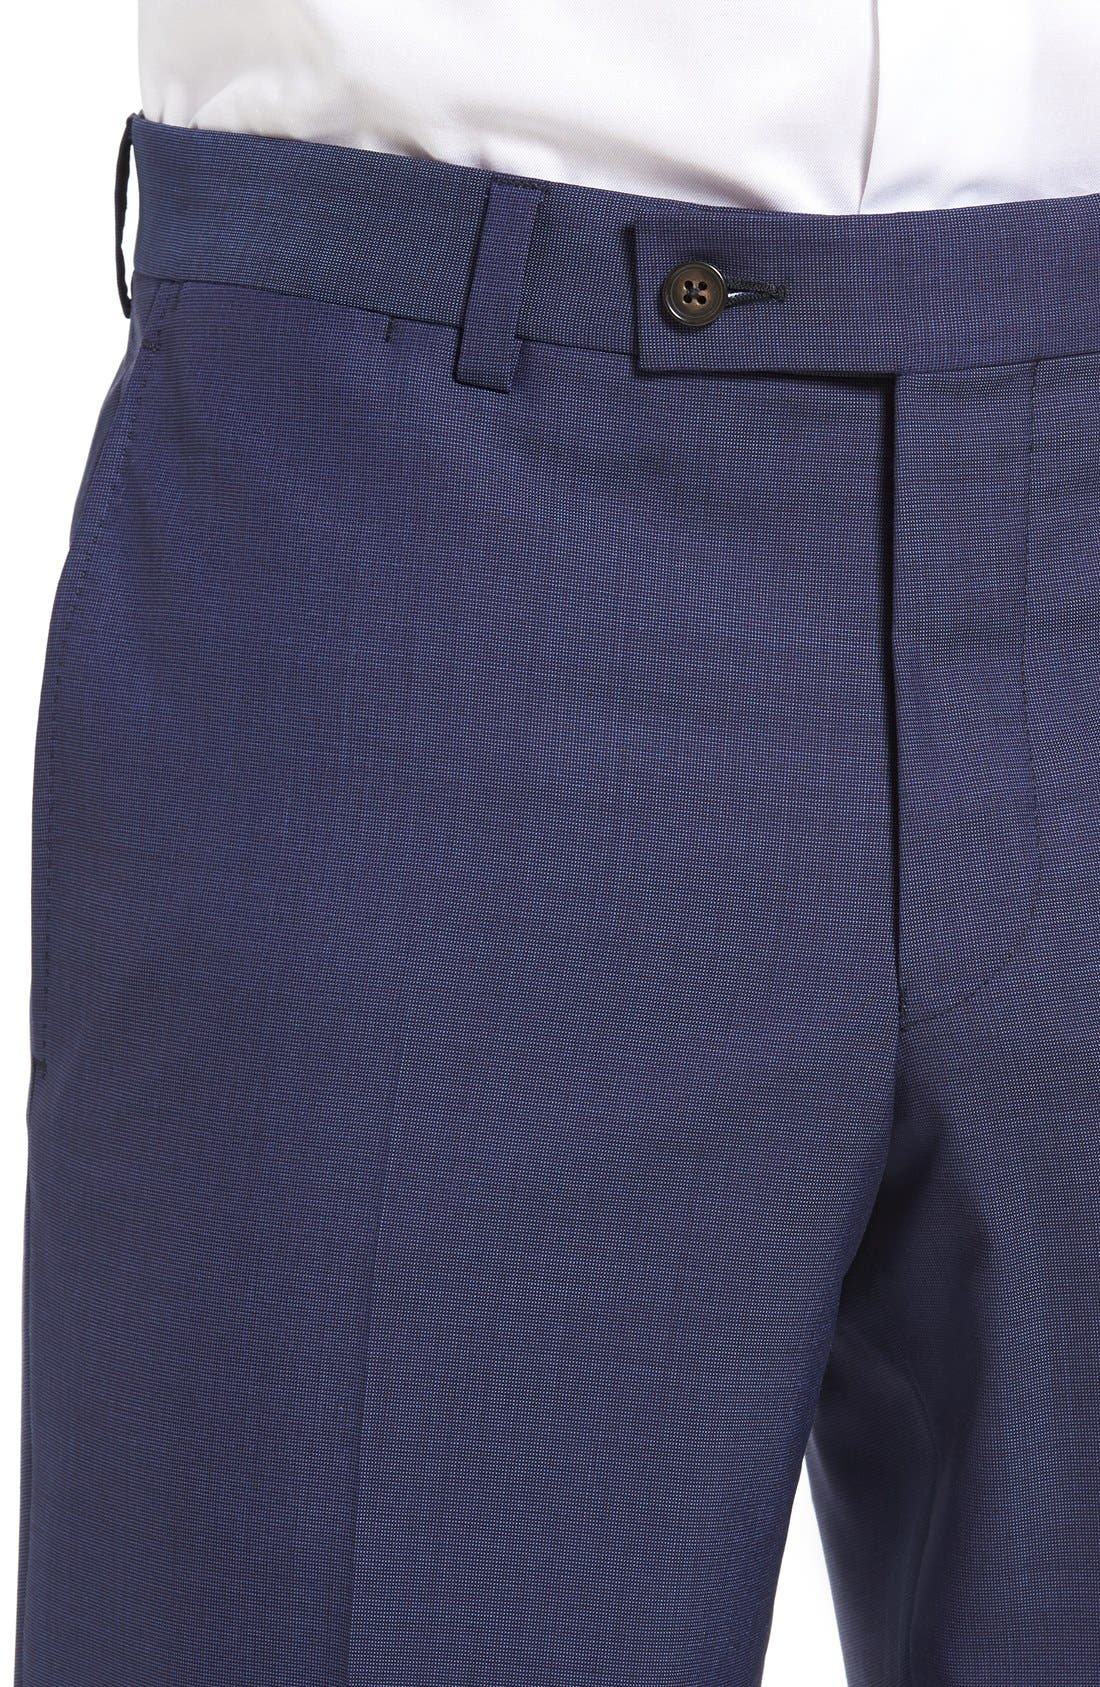 Alternate Image 4  - Ted Baker London Jefferson Flat Front Solid Wool Trousers